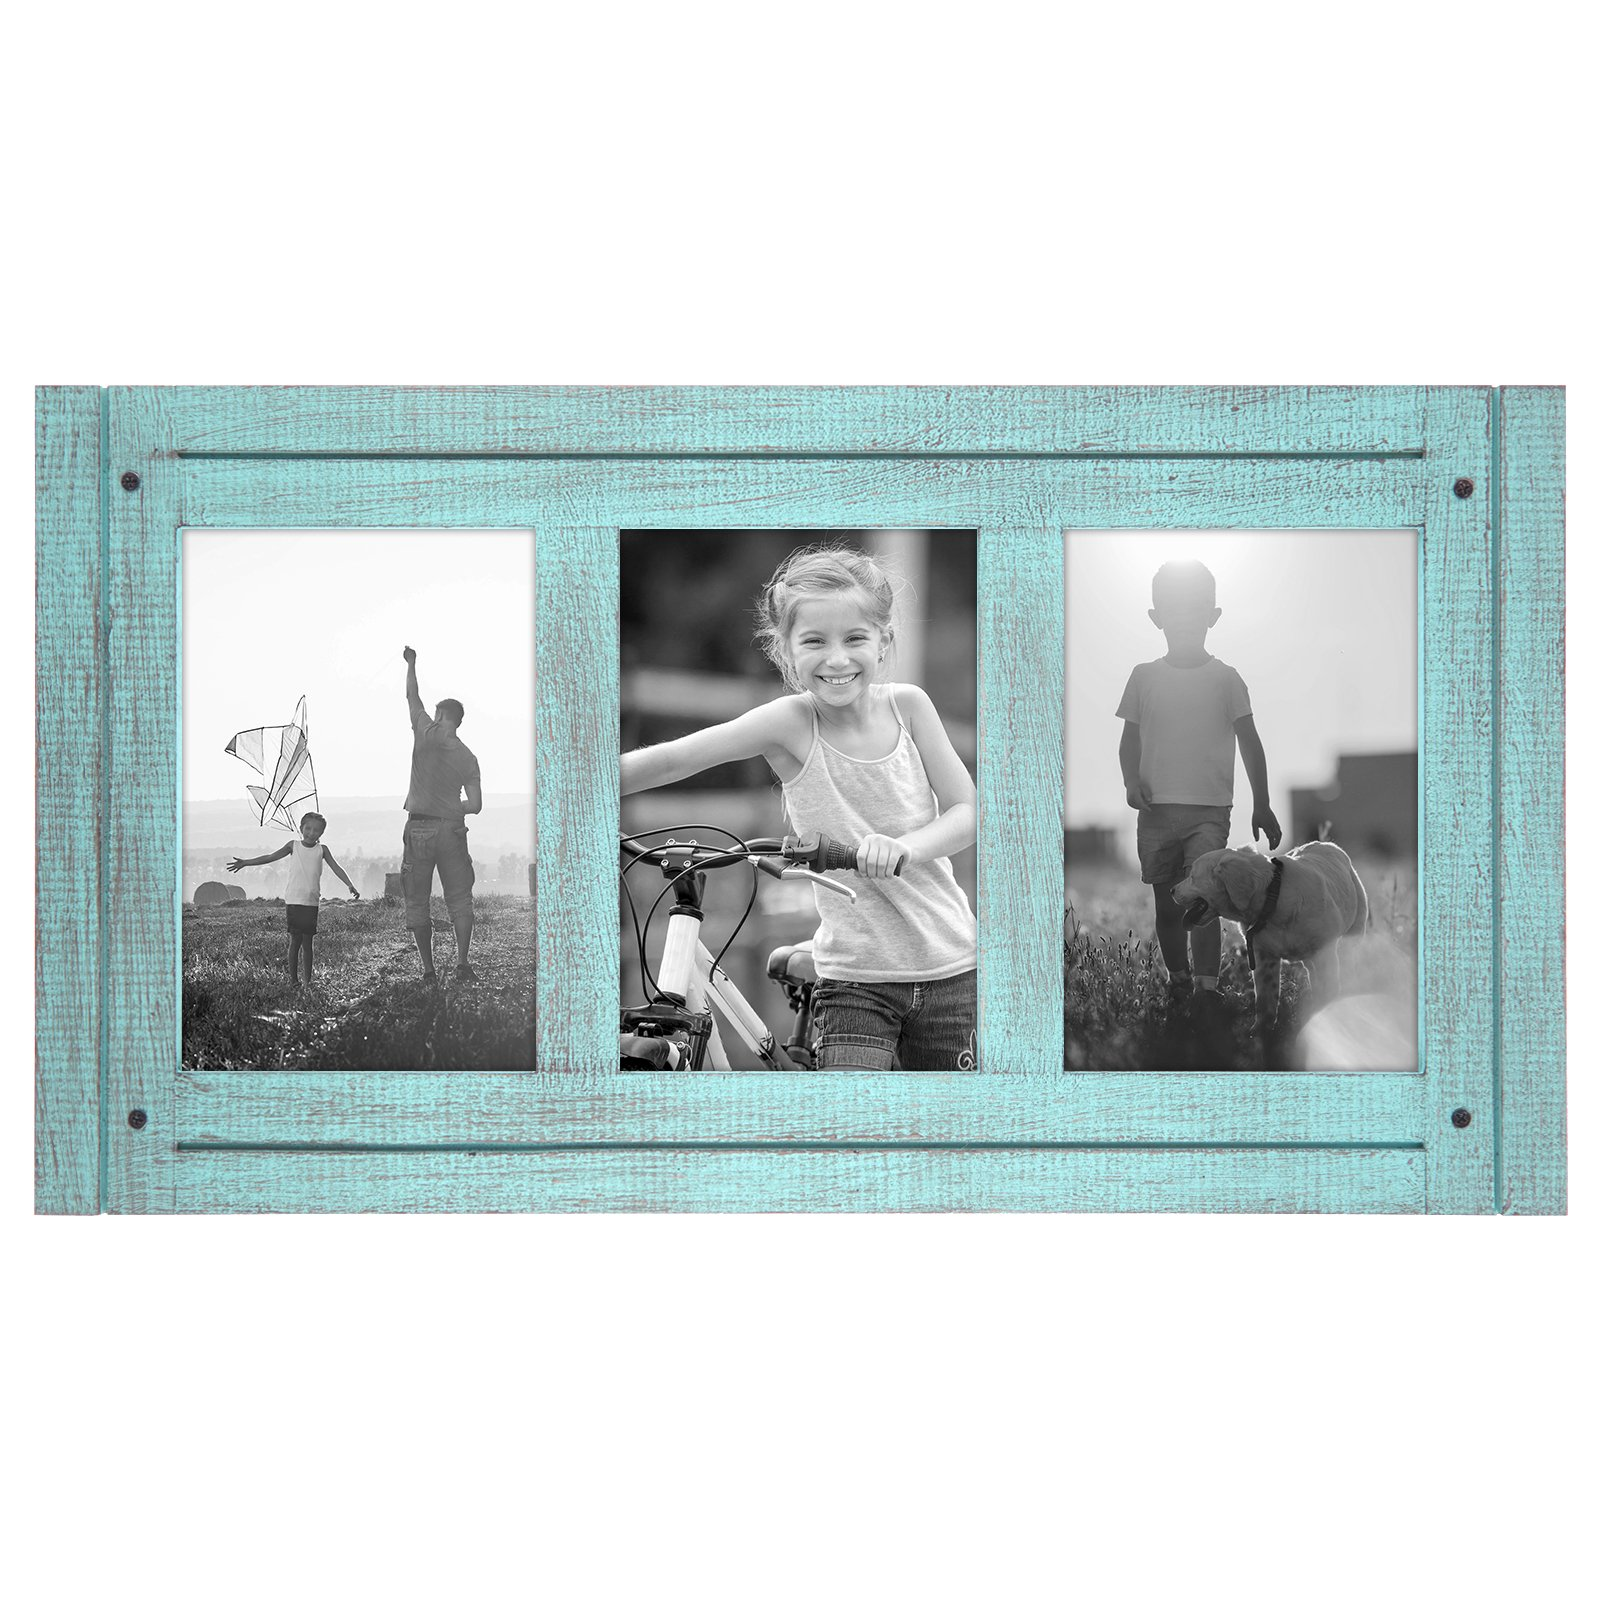 Americanflat 4x6 Turquoise Blue Collage Distressed Wood Frame - Made to Display 3 4x6 Photos - Ready to Hang - Ready to Stand - Built-in Easel by Americanflat